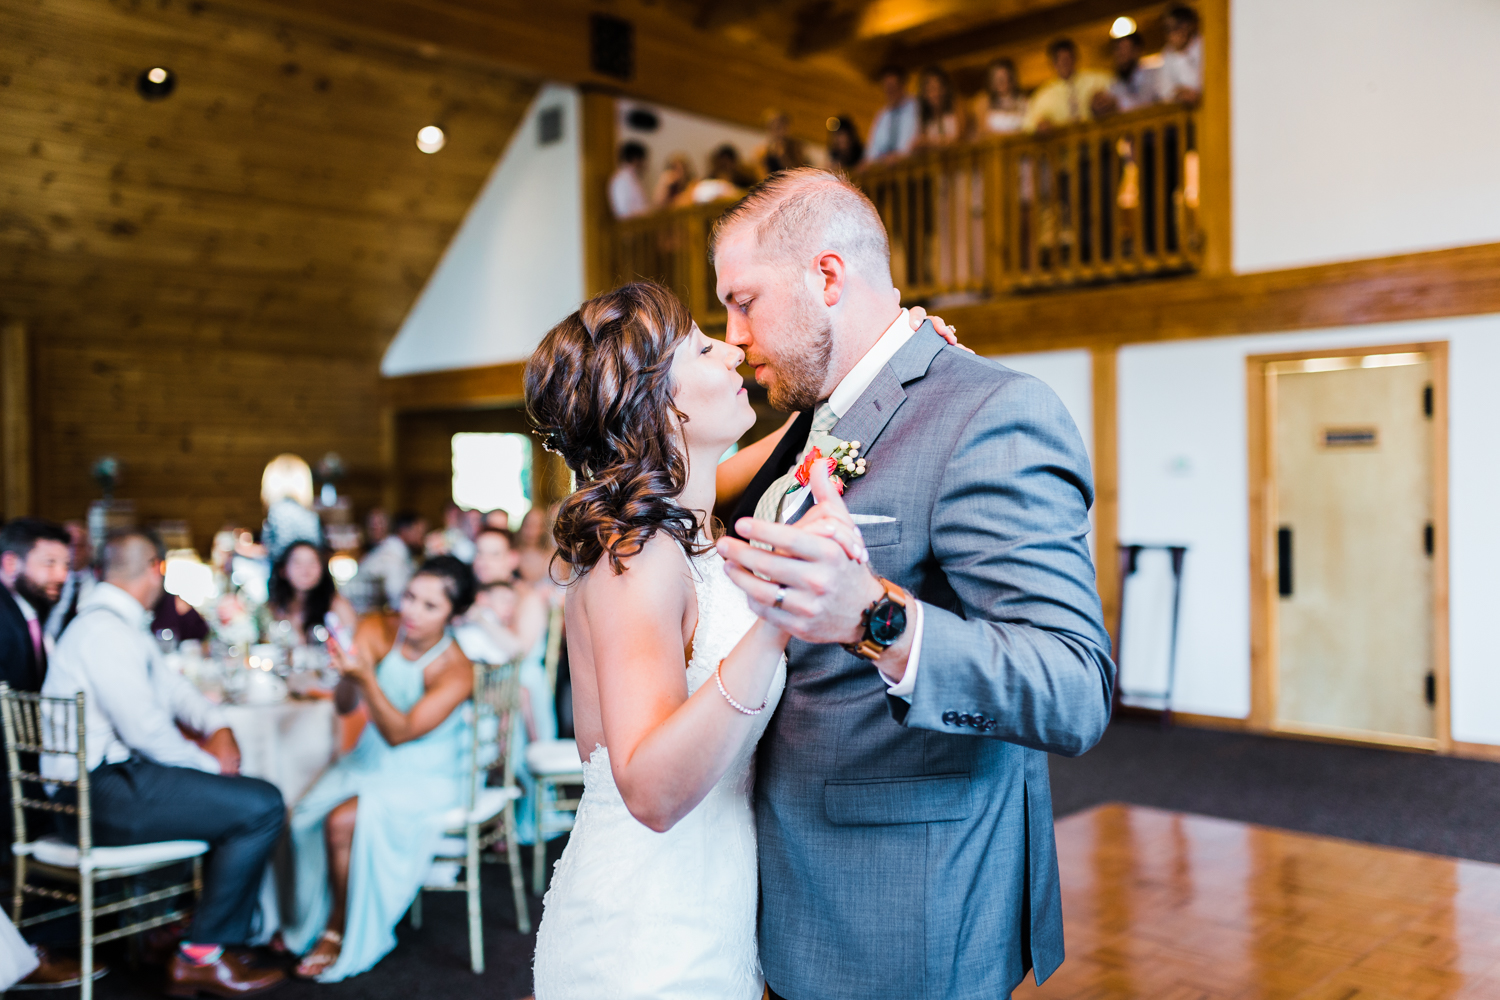 bride and groom share their first dance with a romantic moment